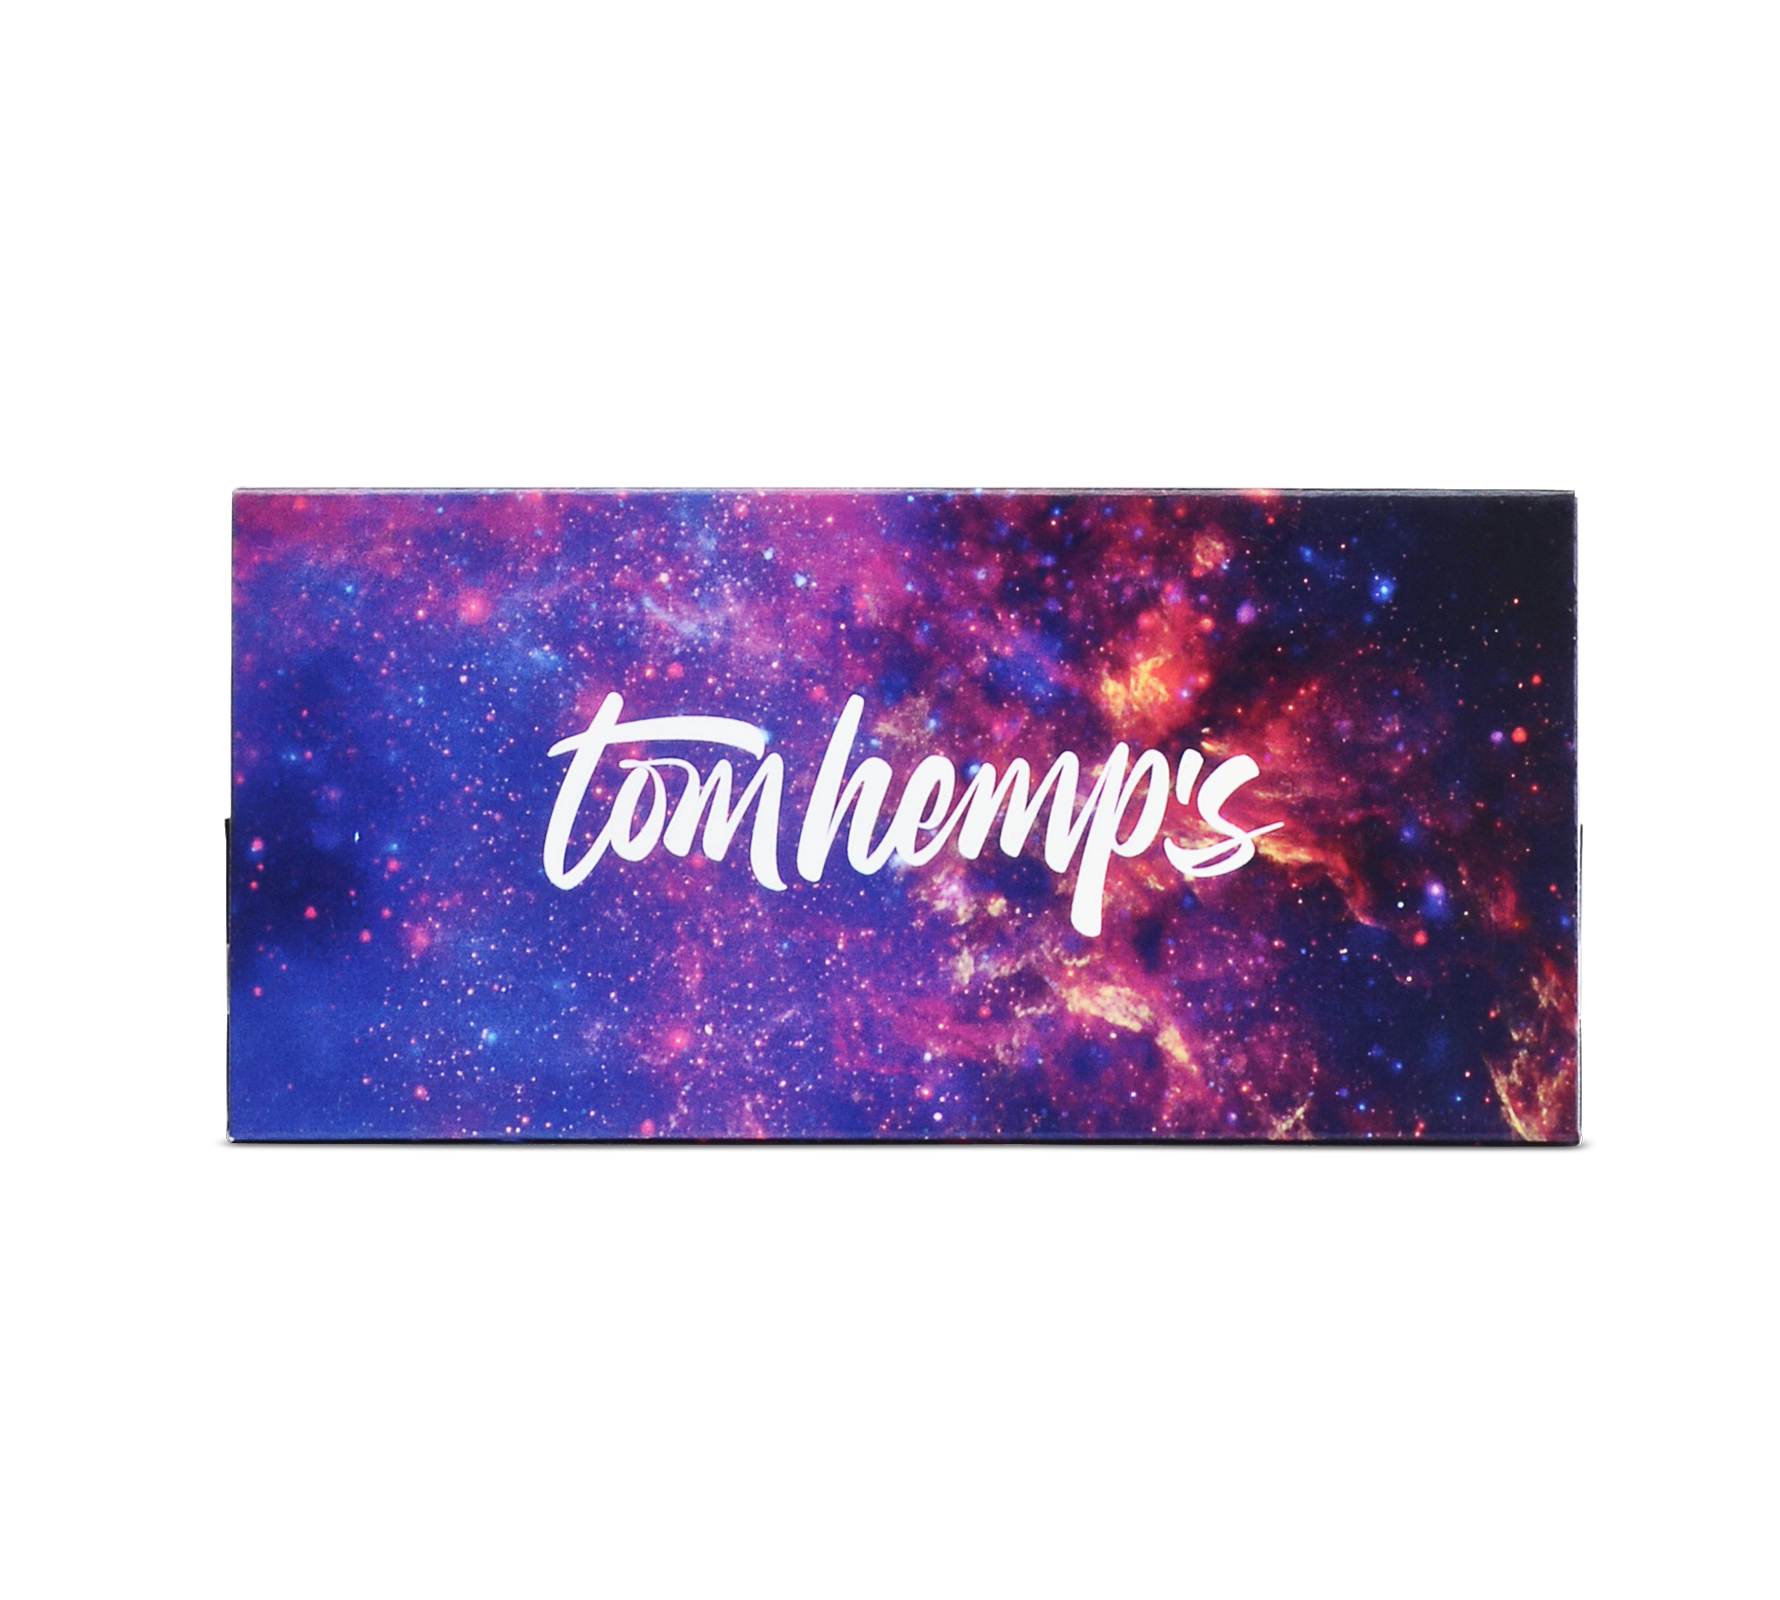 TomHemps_GalaxyPaper_Desktop_Detail_HD_1780x1600